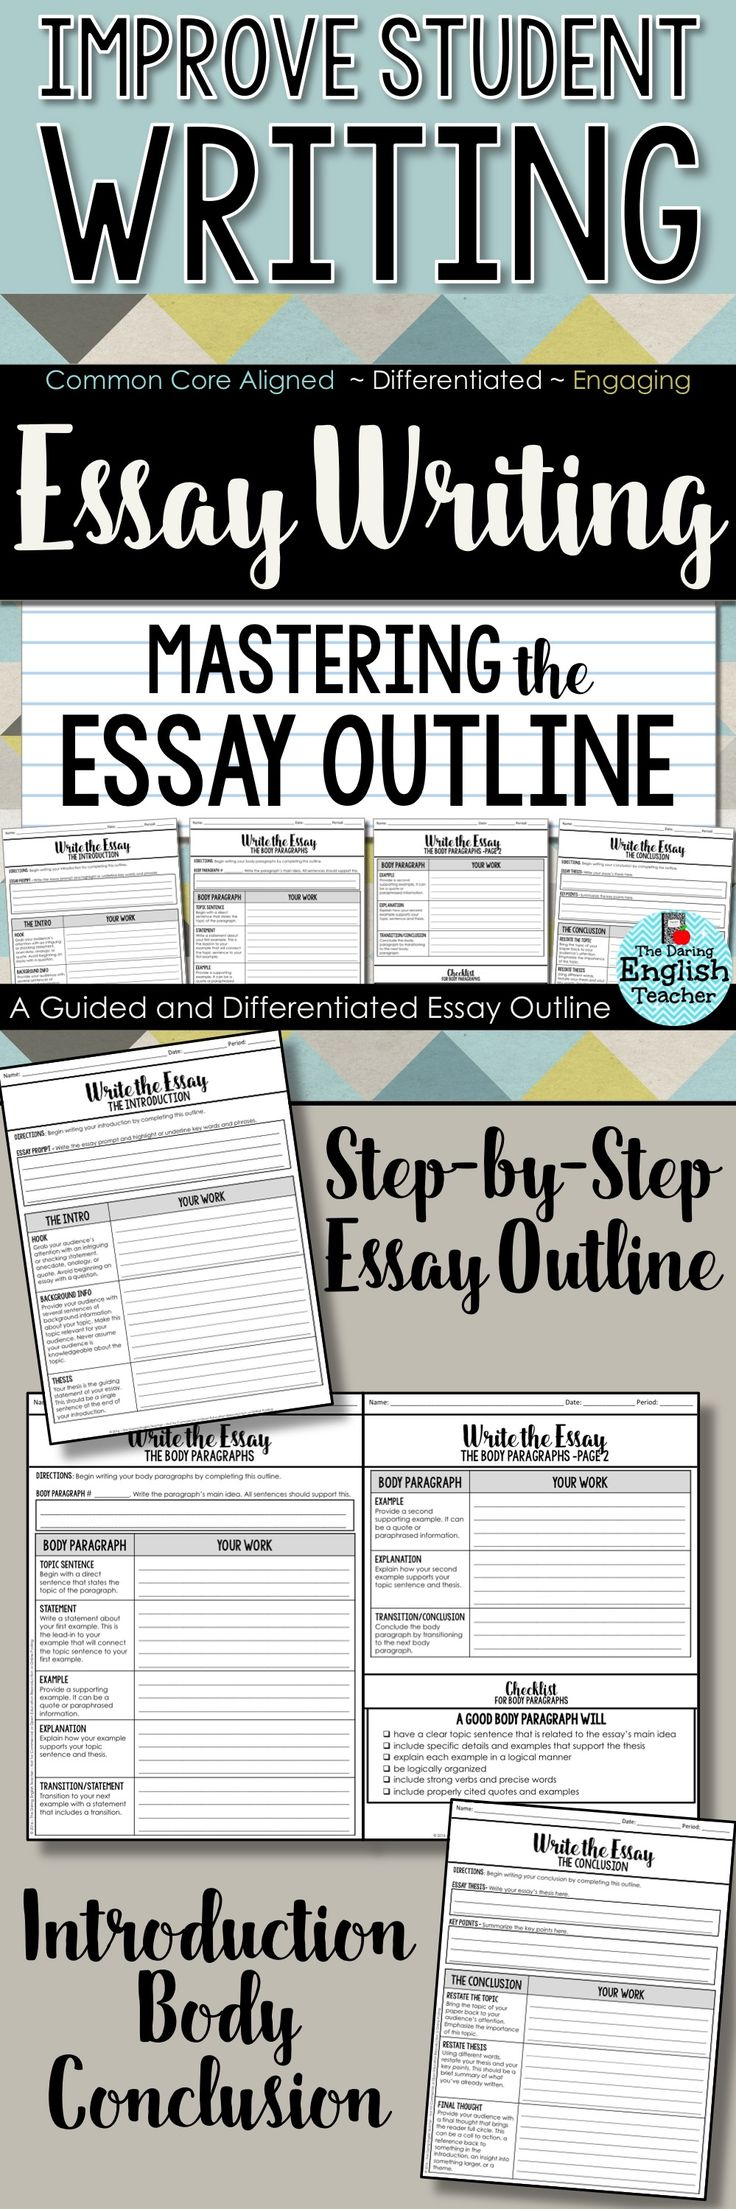 Population Essay In English Essay Writing Mastering The Essay Outline With Guided Instructions Cause And Effect Essay Thesis also Christmas Essay In English Best  Essay Writing Ideas On Pinterest  Essay Writing Tips  Persuasive Essay Topics High School Students